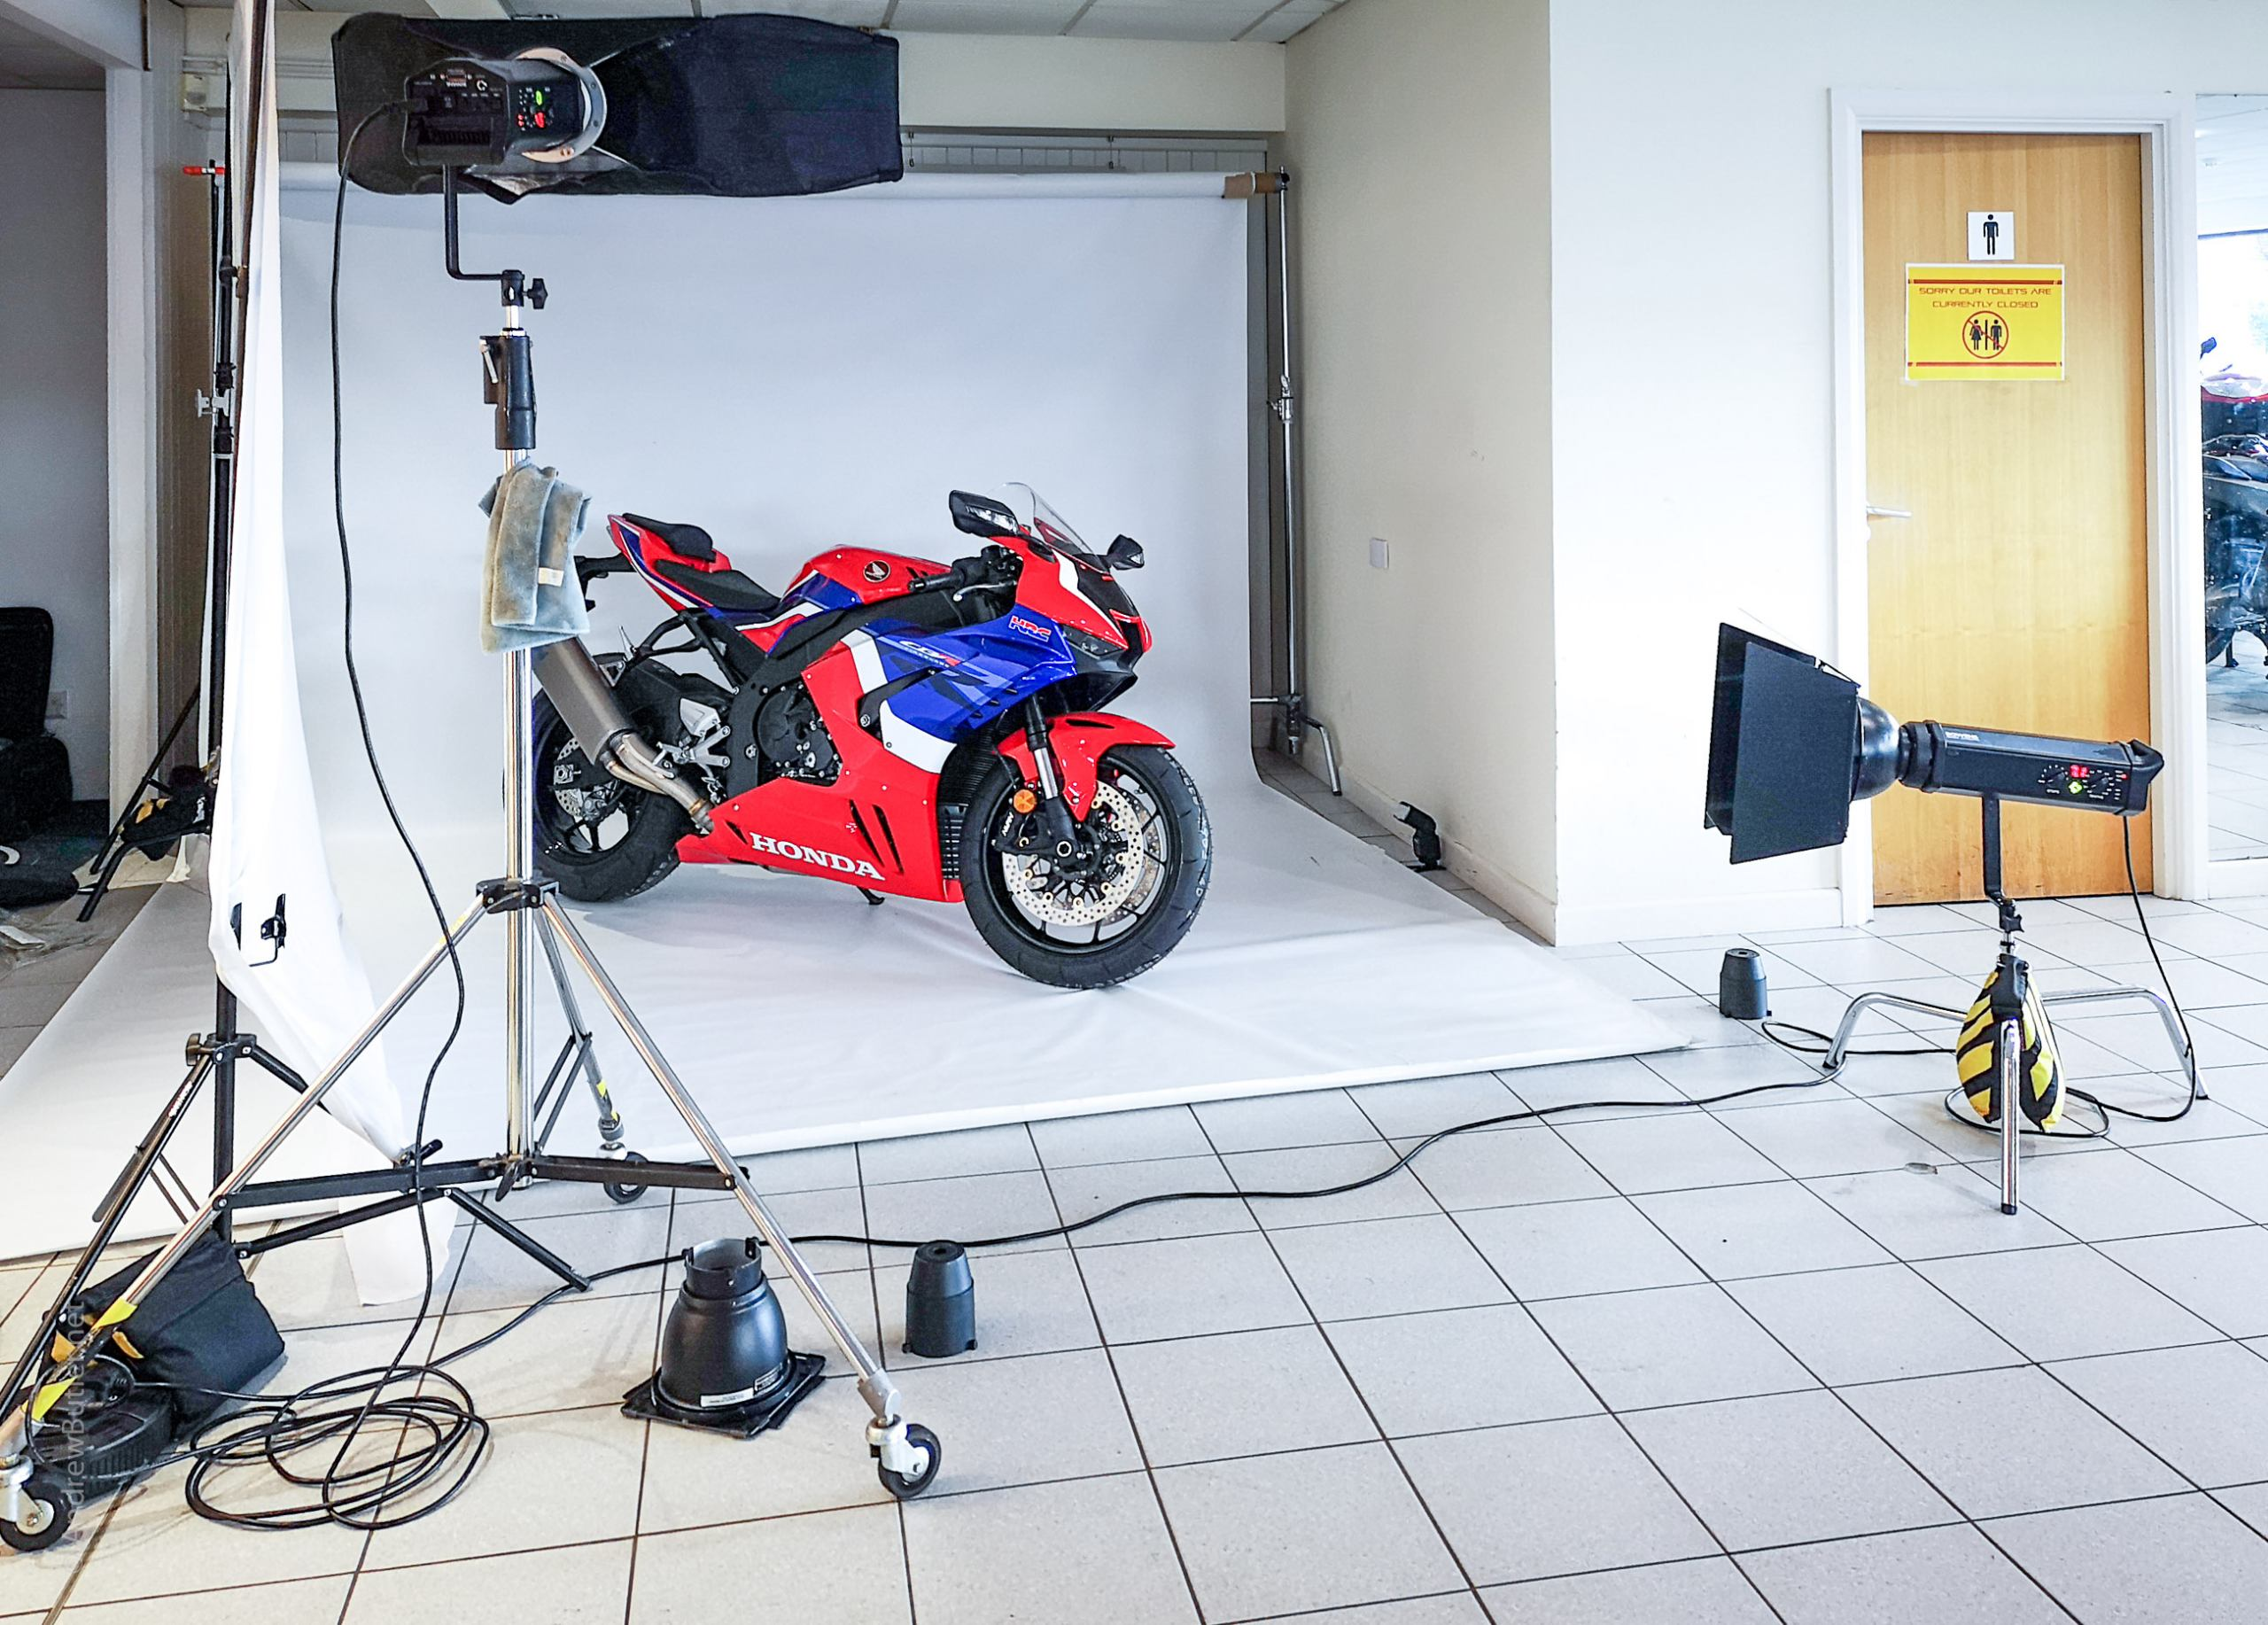 Motorbike Location Photography